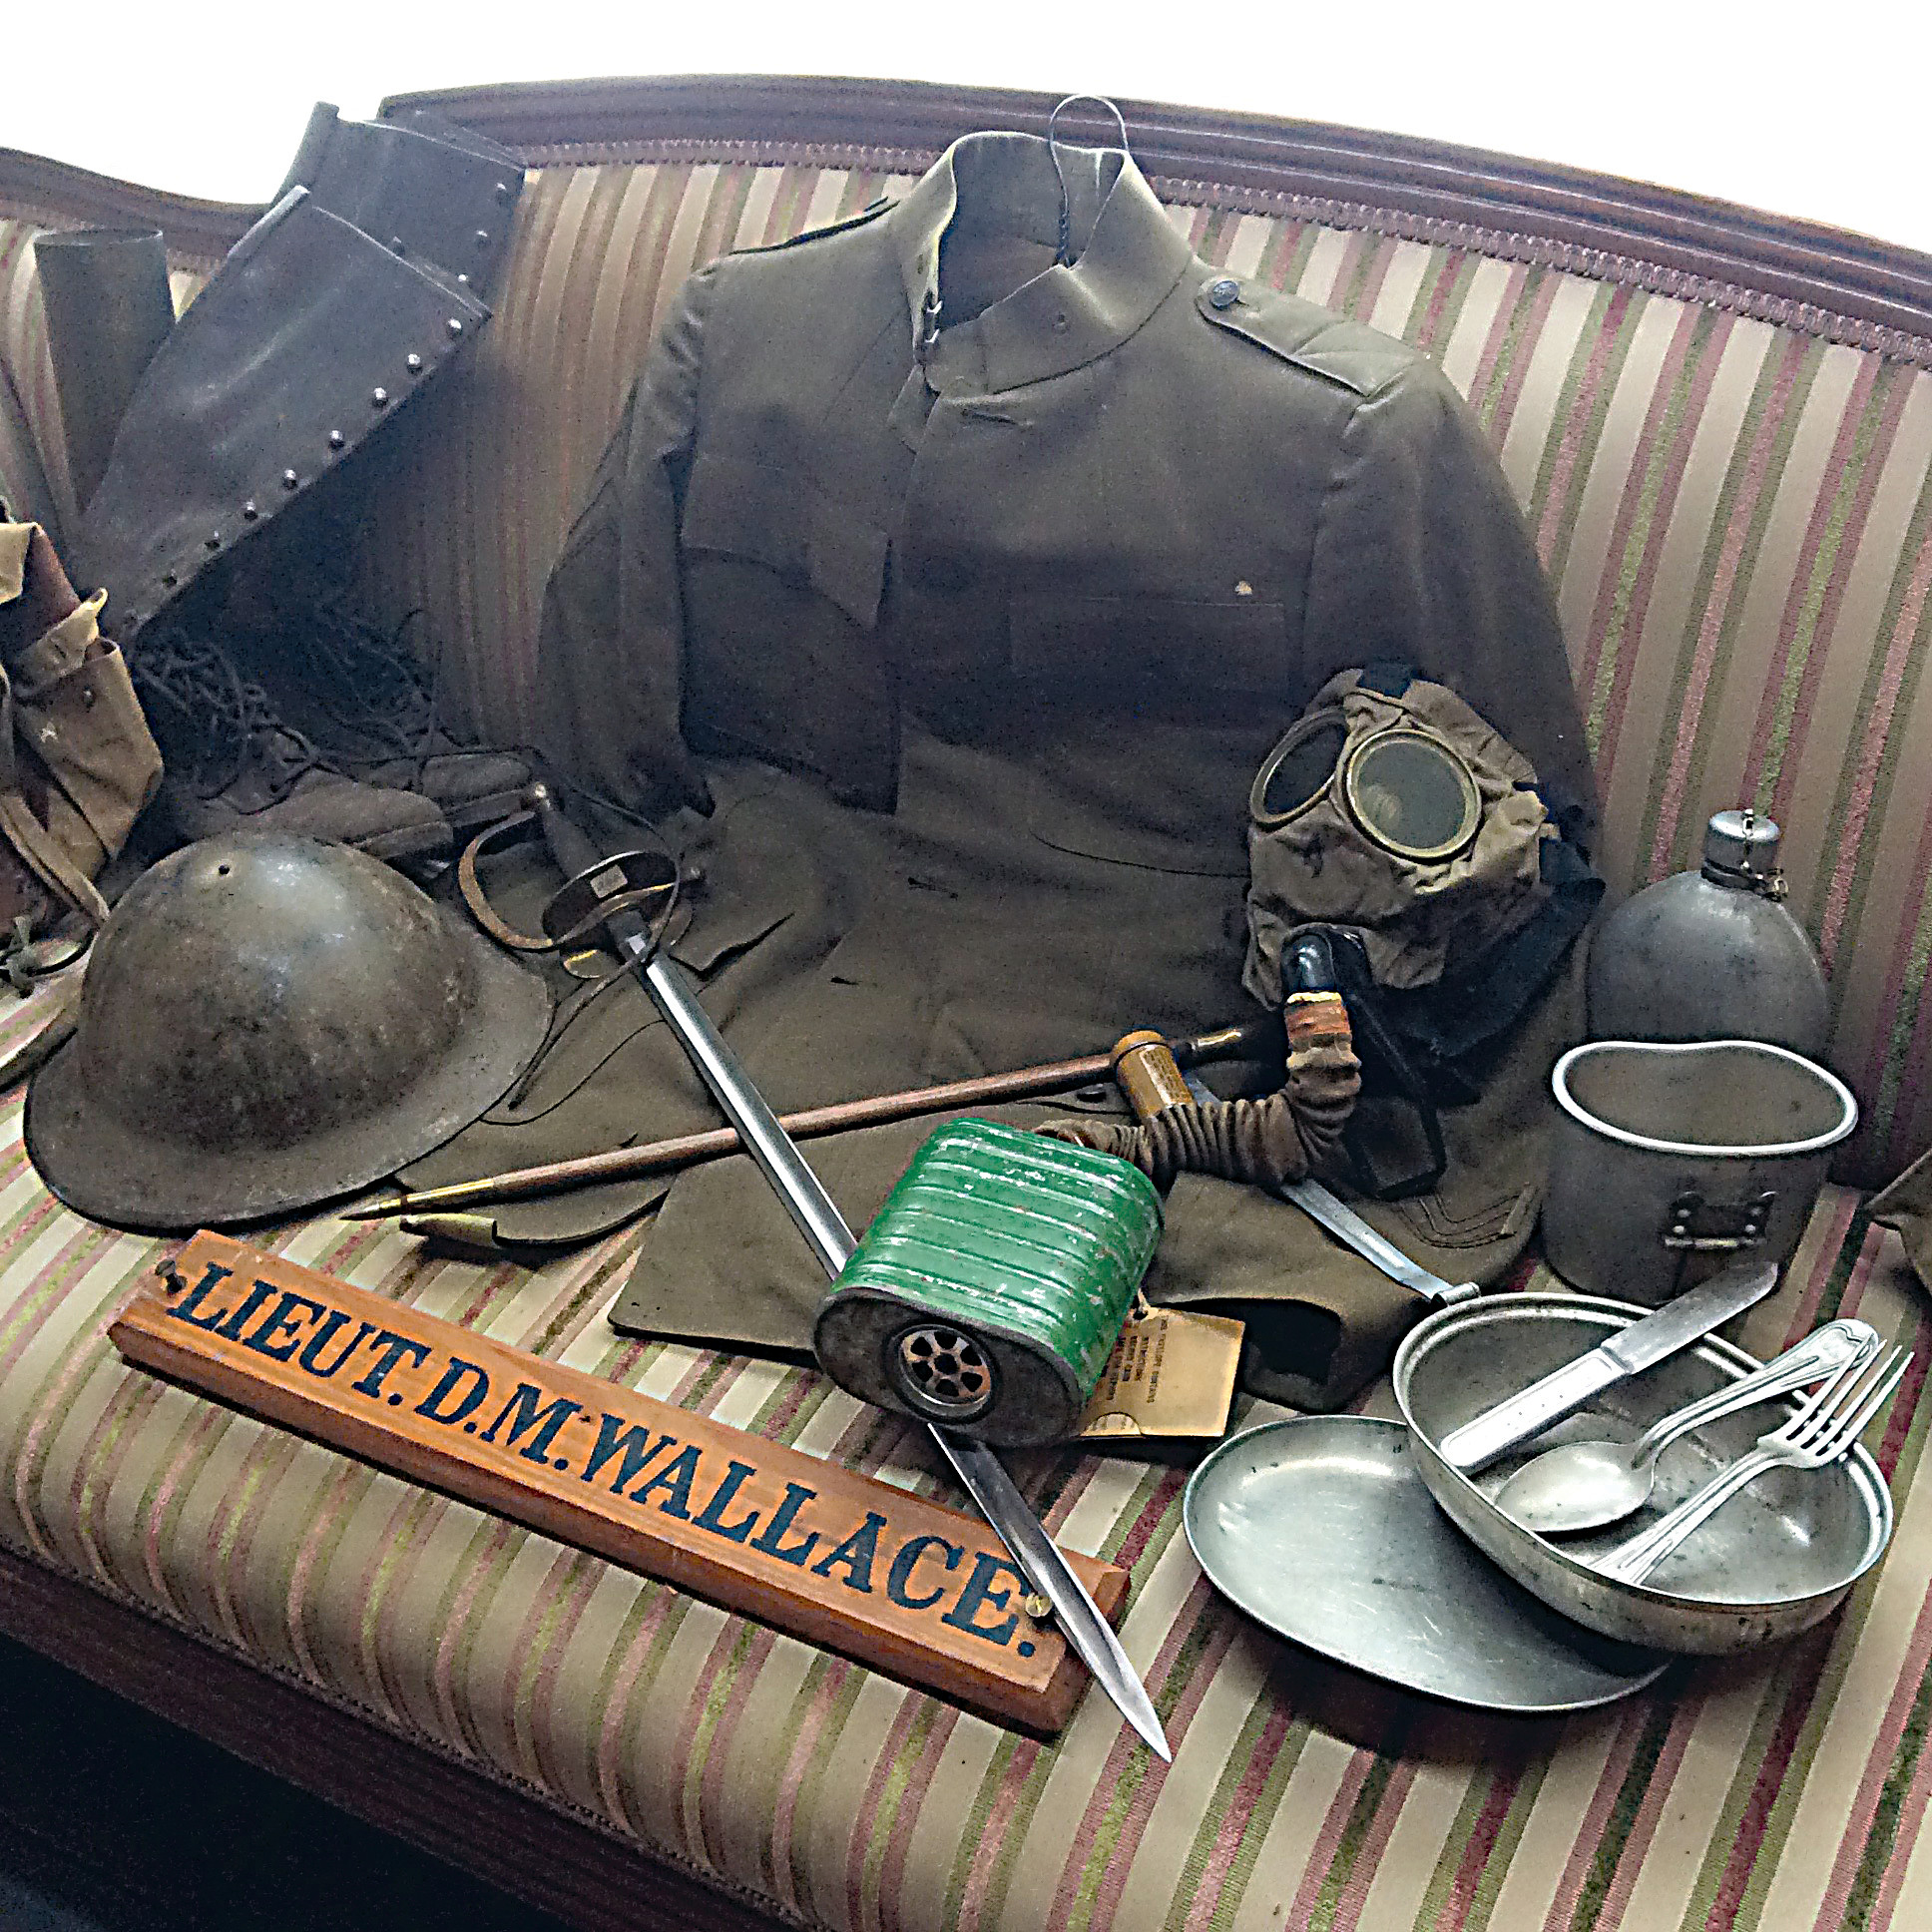 These are just some of the items from the footlocker of David McKee Wallace that visitors will see at the military exhibit at the Middletown Area Historical Society museum beginning May 20.